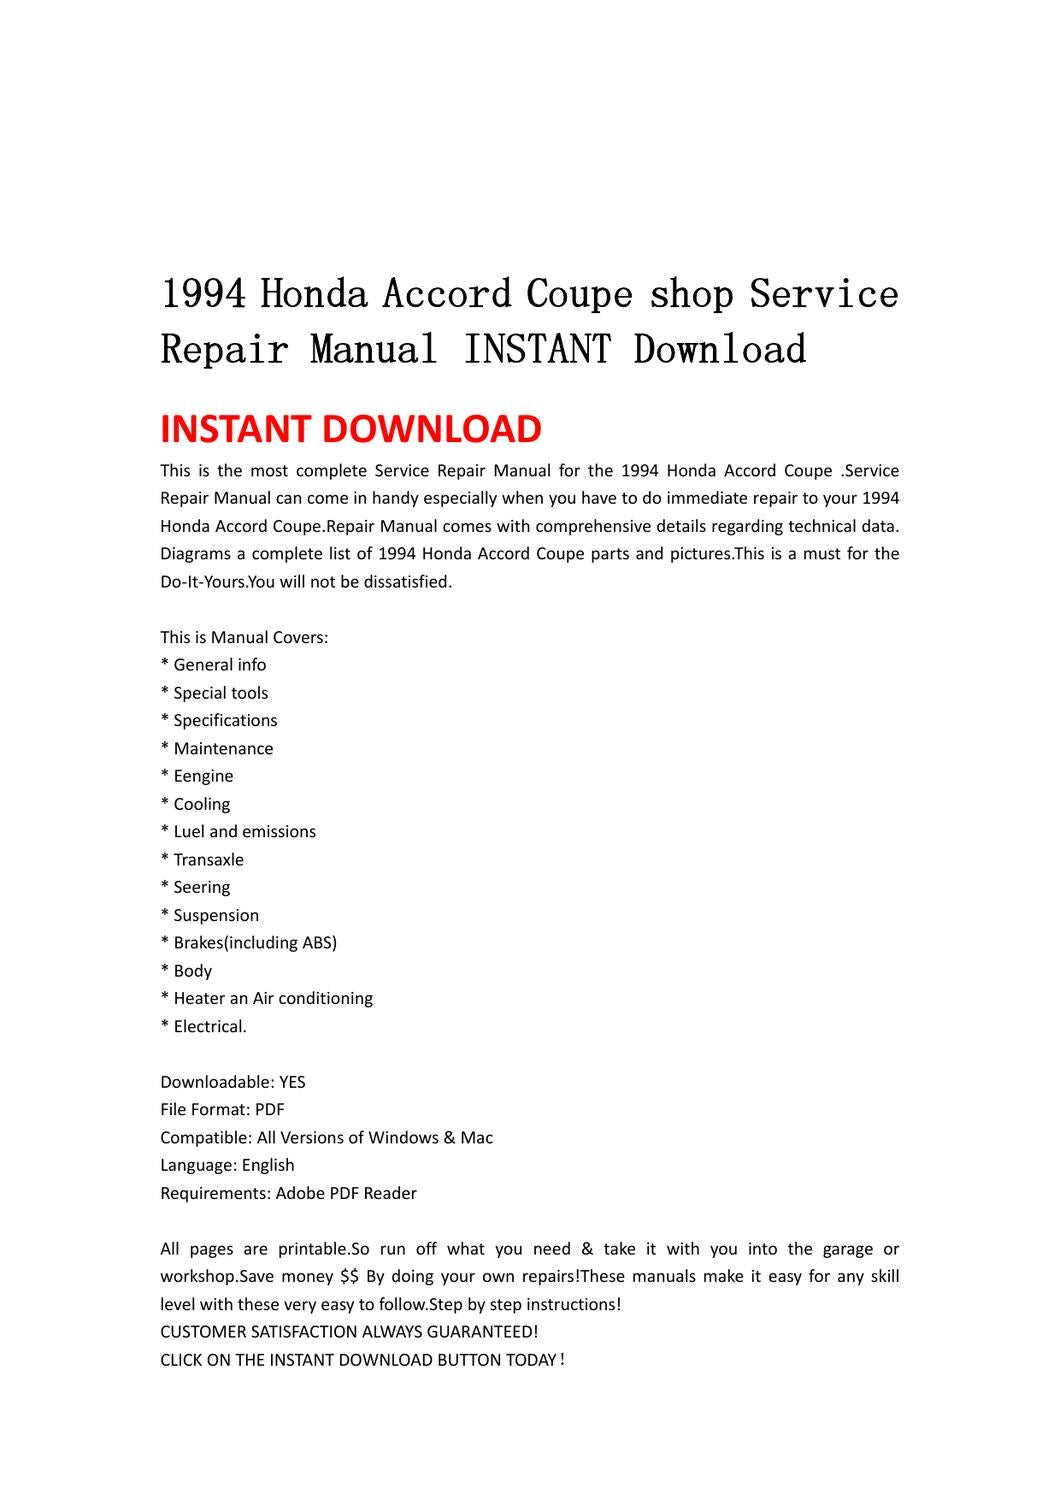 1994 honda accord coupe shop service repair manual instant download by lin leiww issuu. Black Bedroom Furniture Sets. Home Design Ideas